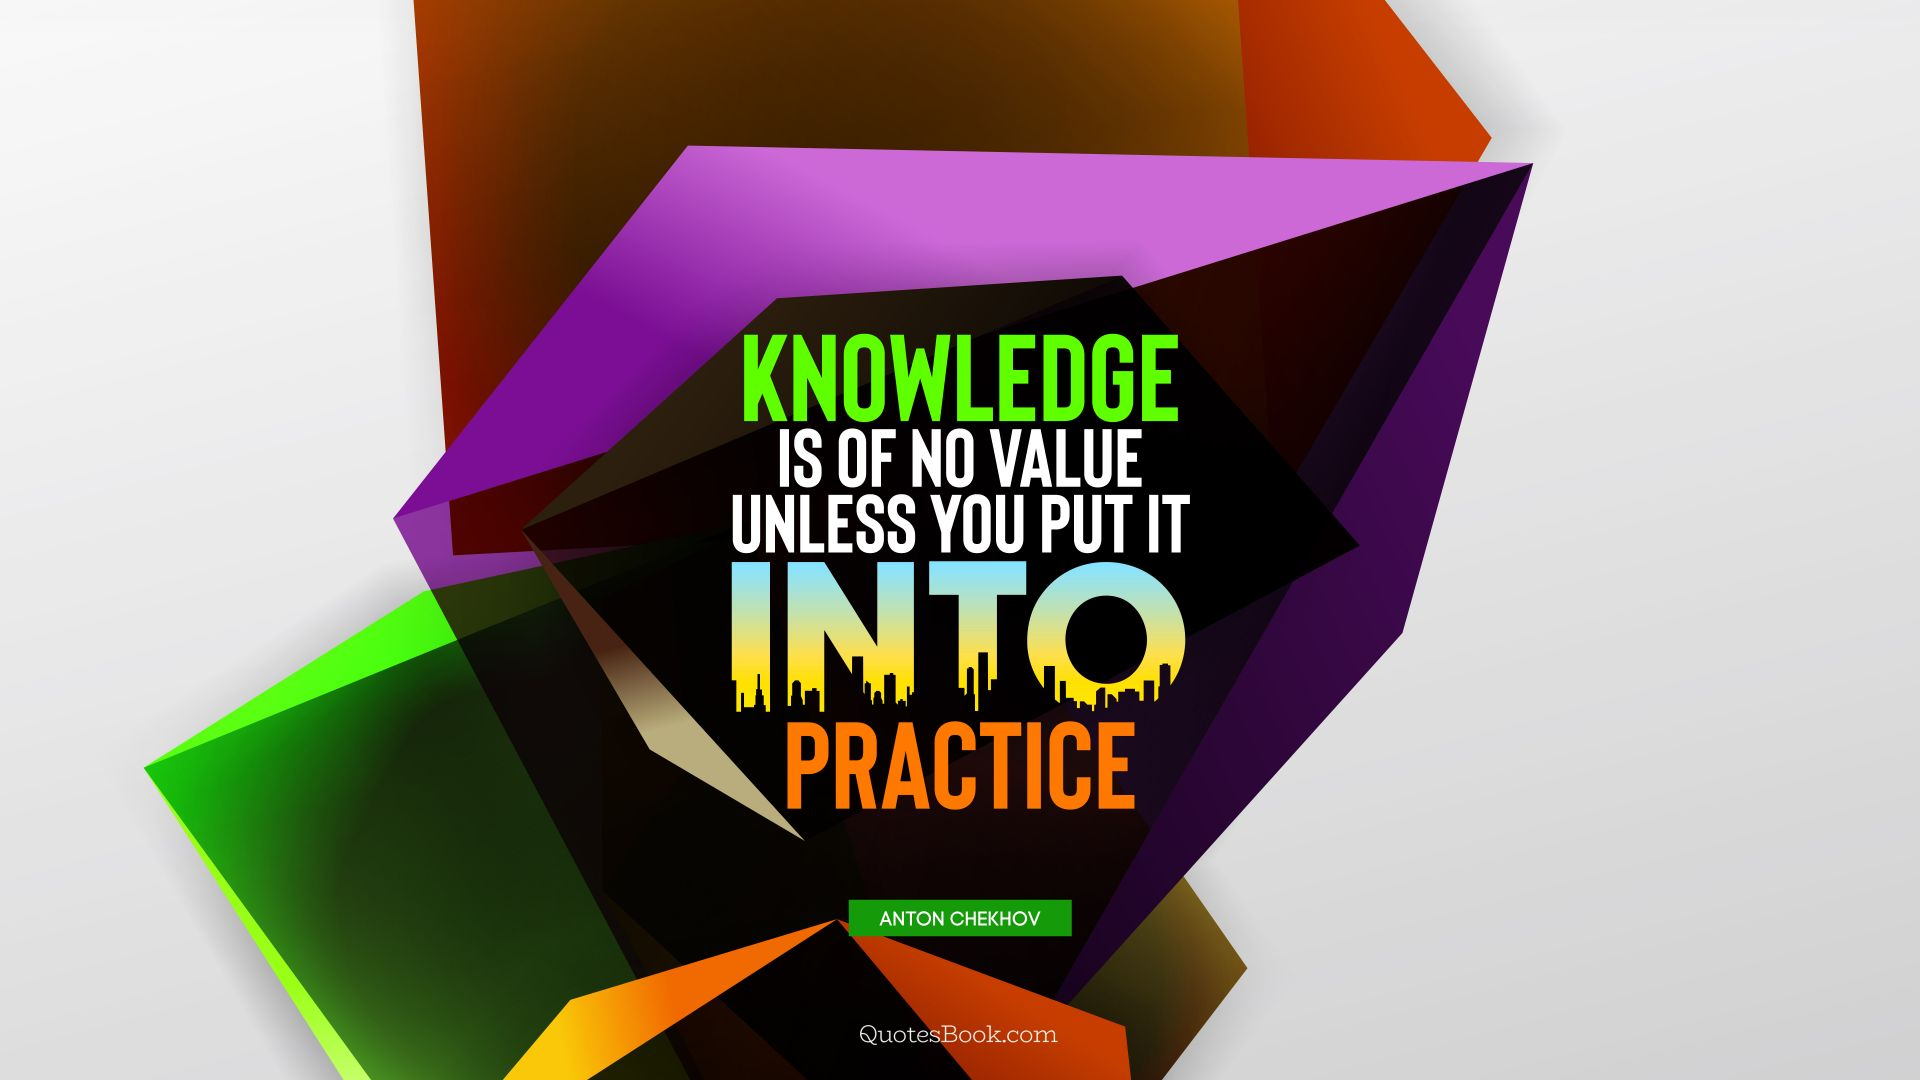 Knowledge is of no value unless you put it into practice. - Quote by Anton Chekhov